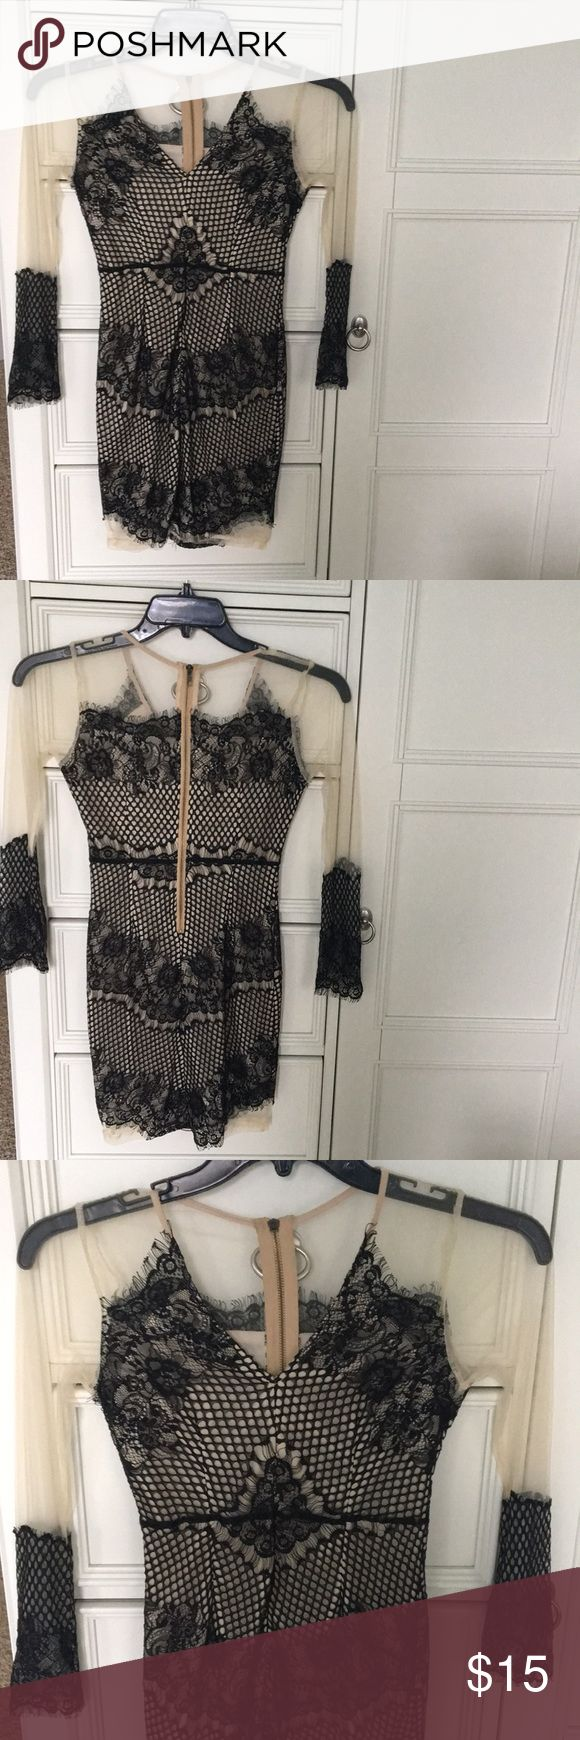 Boohoo Party Dress Black and sheer party dress Only worn once Boohoo Petite Dresses Long Sleeve